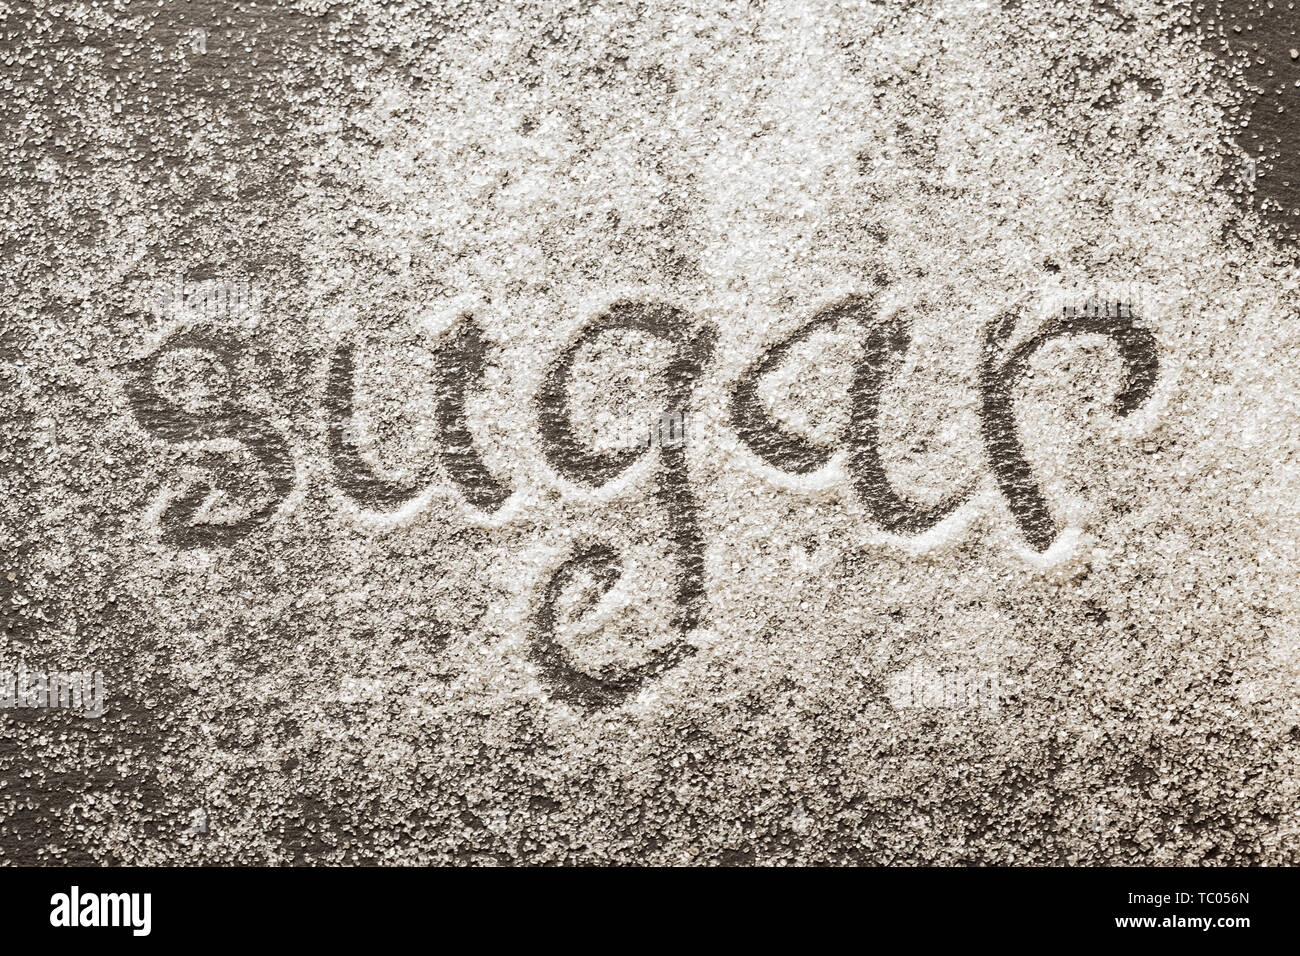 The word sugar written into a pile of white granulated sugar - Stock Image